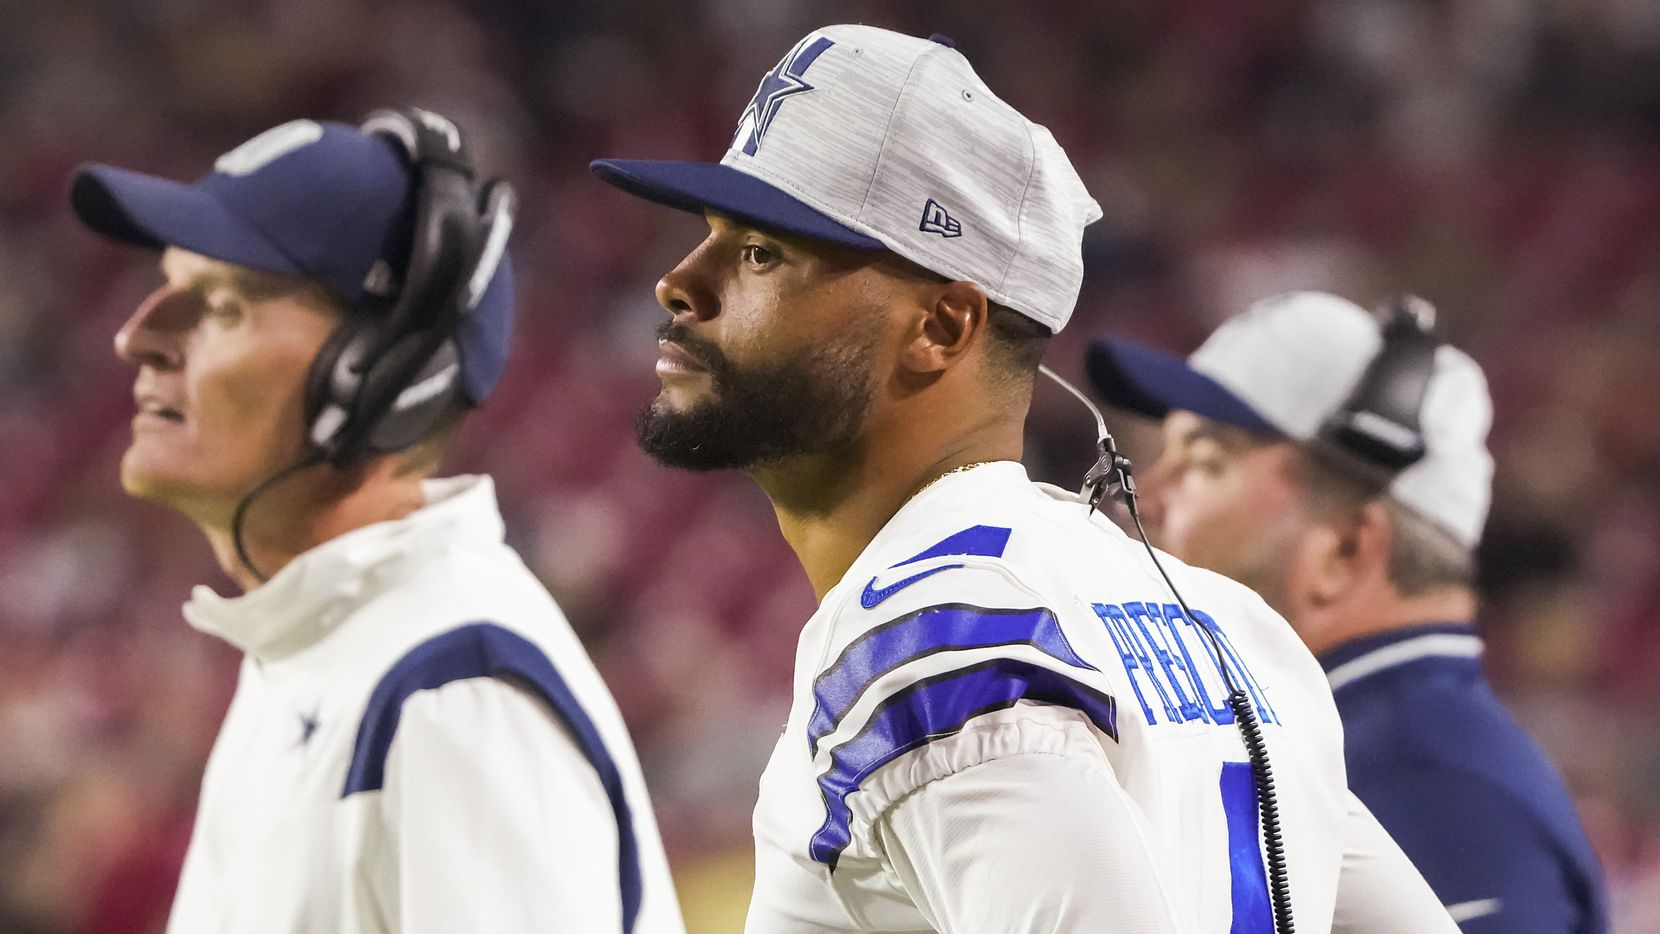 Dallas Cowboys quarterback Dak Prescott watches from the sidelines during the first quarter of an NFL football game against the Arizona Cardinals at State Farm Stadium on Friday, Aug. 13, 2021, in Glendale, Ariz.